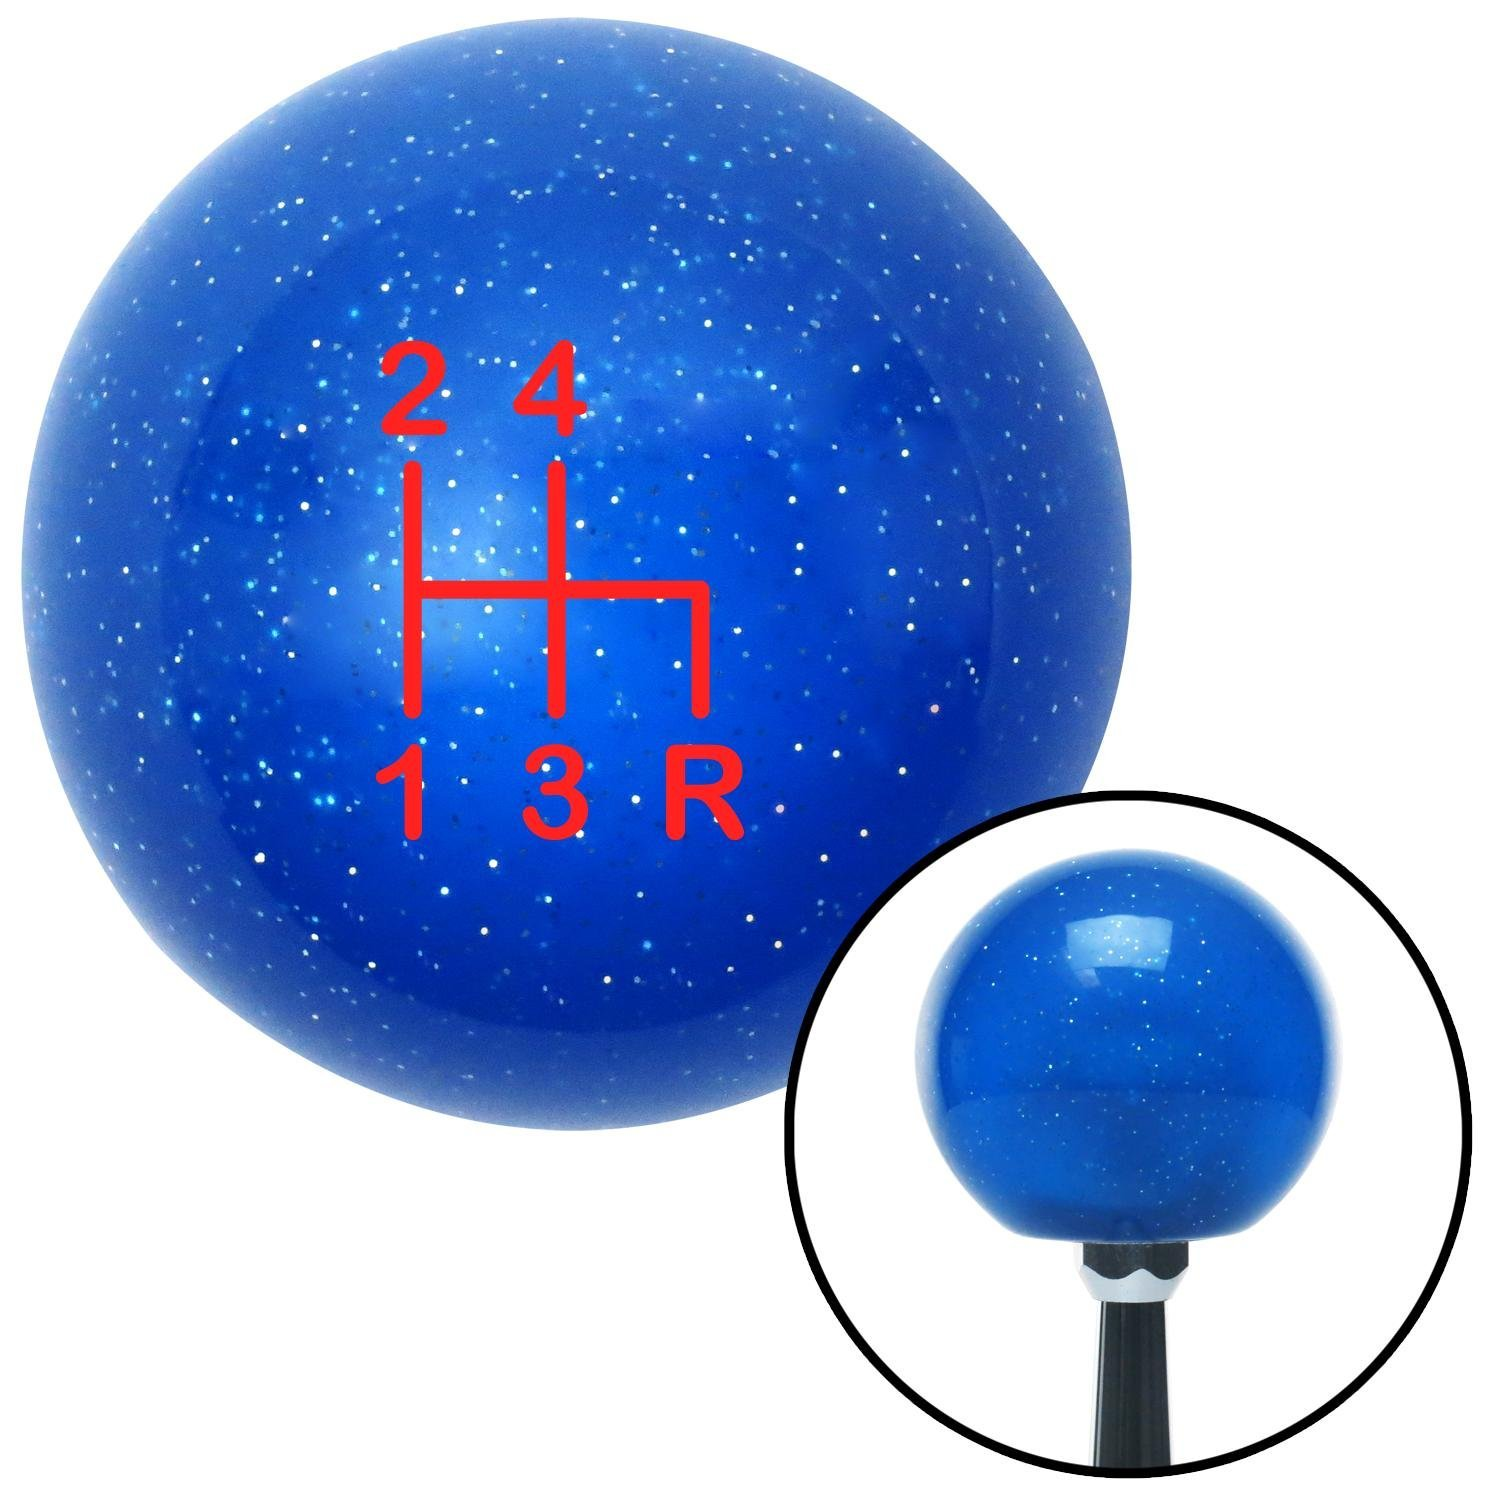 American Shifter 78837 Blue Metal Flake Shift Knob with M16 x 1.5 Insert Red Shift Pattern 1n